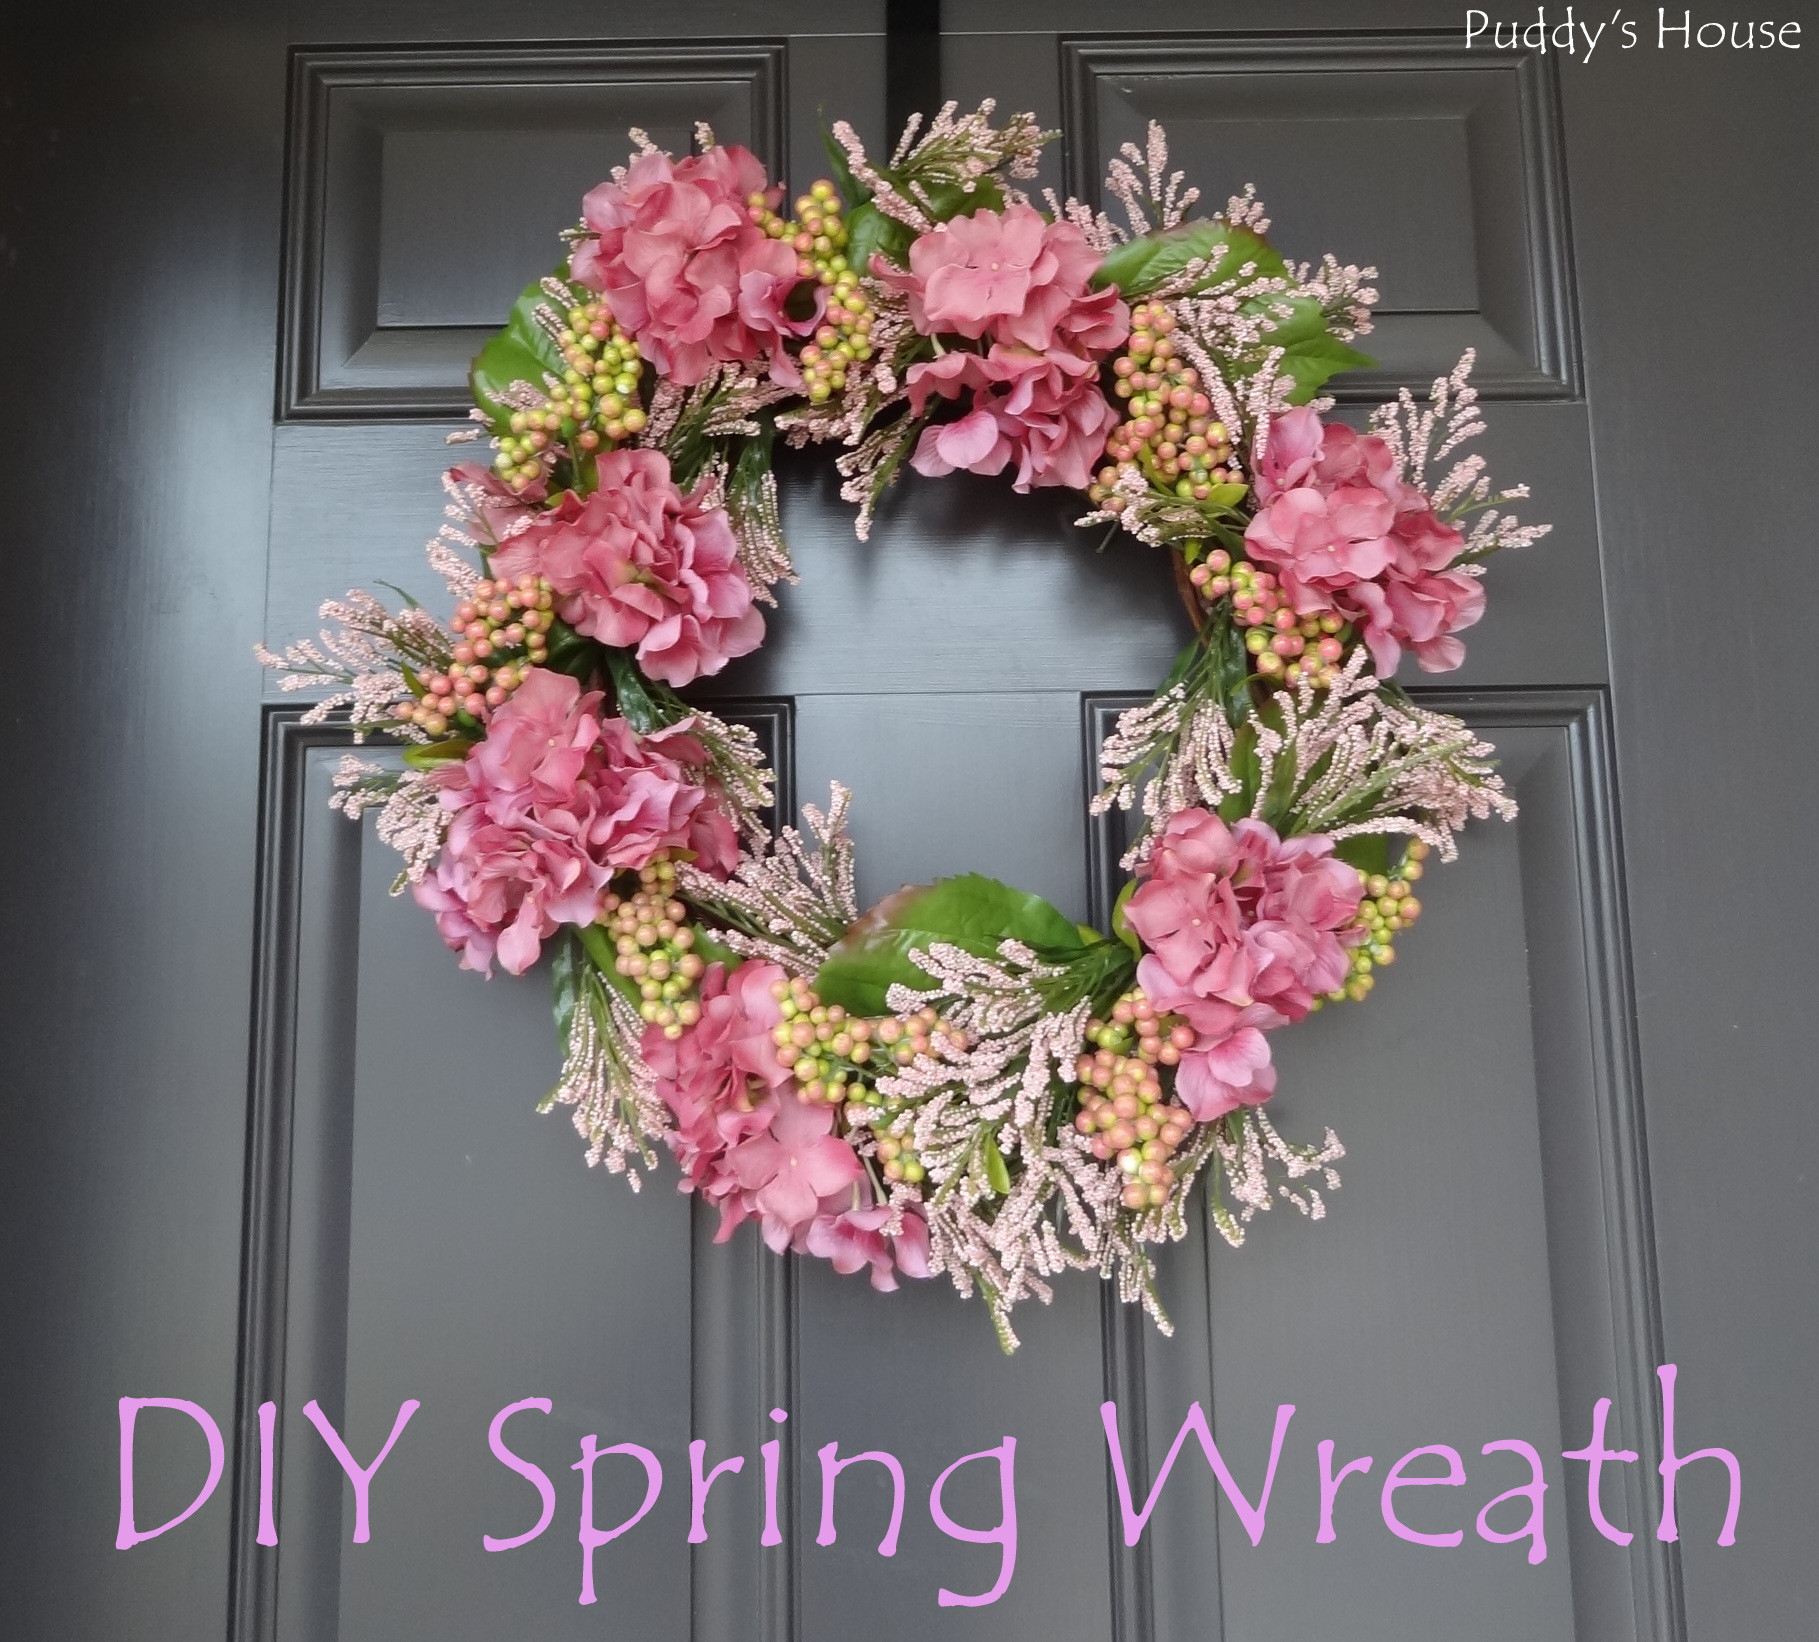 Best ideas about DIY Spring Wreath . Save or Pin DIY Spring Wreath Now.